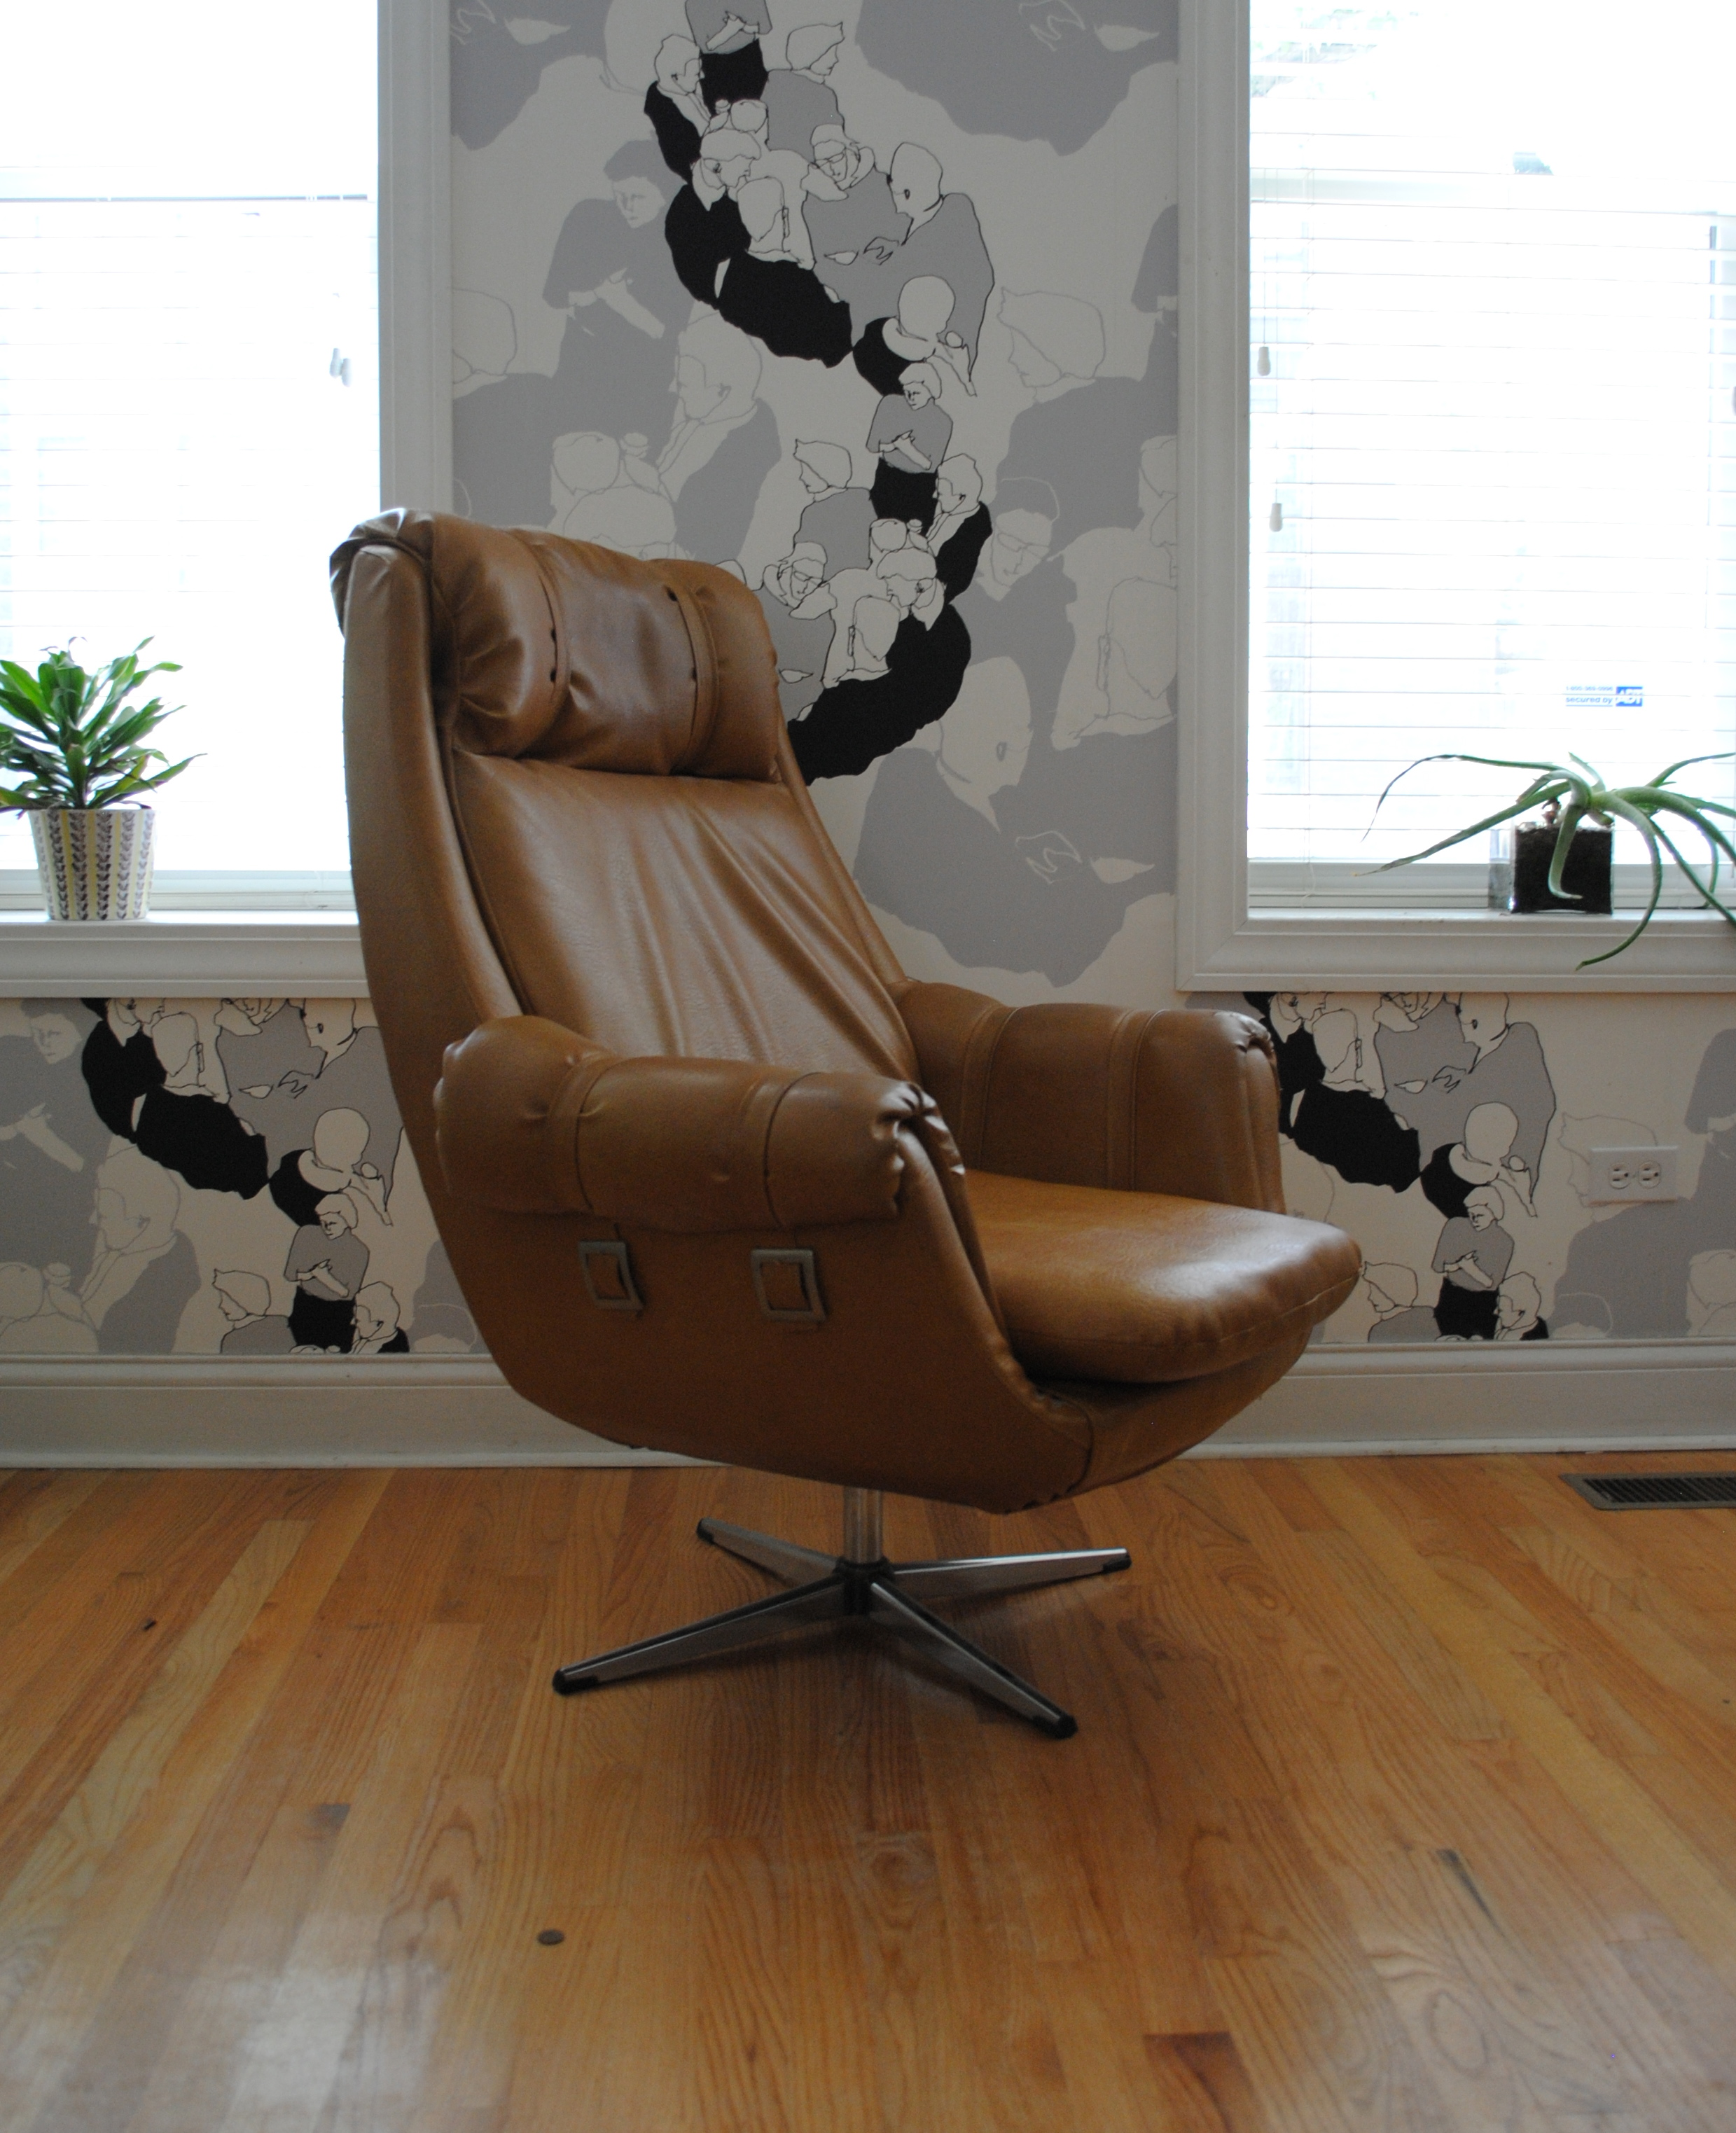 Vintage Overman Lounge Chair. Vinyl Upholstery In Very Good Condition.  Please Contact Me With Any Questions.